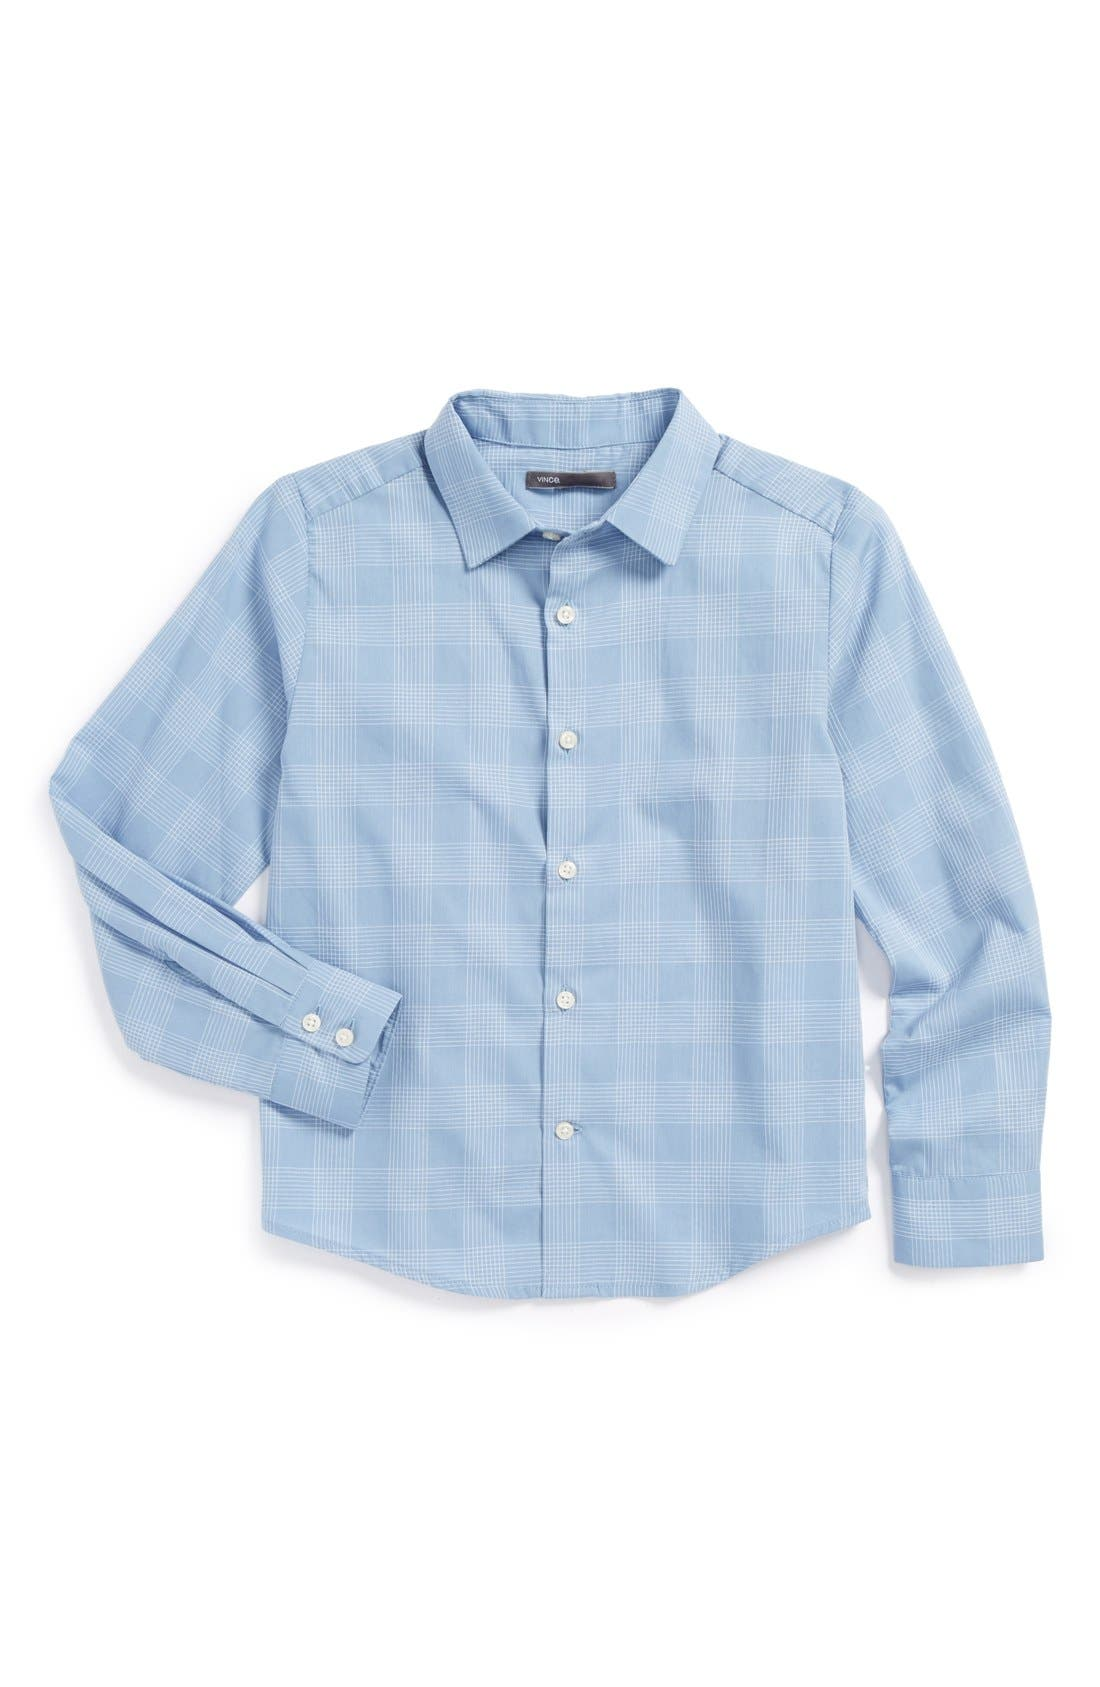 Alternate Image 1 Selected - Vince 'Dobby' Cotton Sport Shirt (Big Boys)